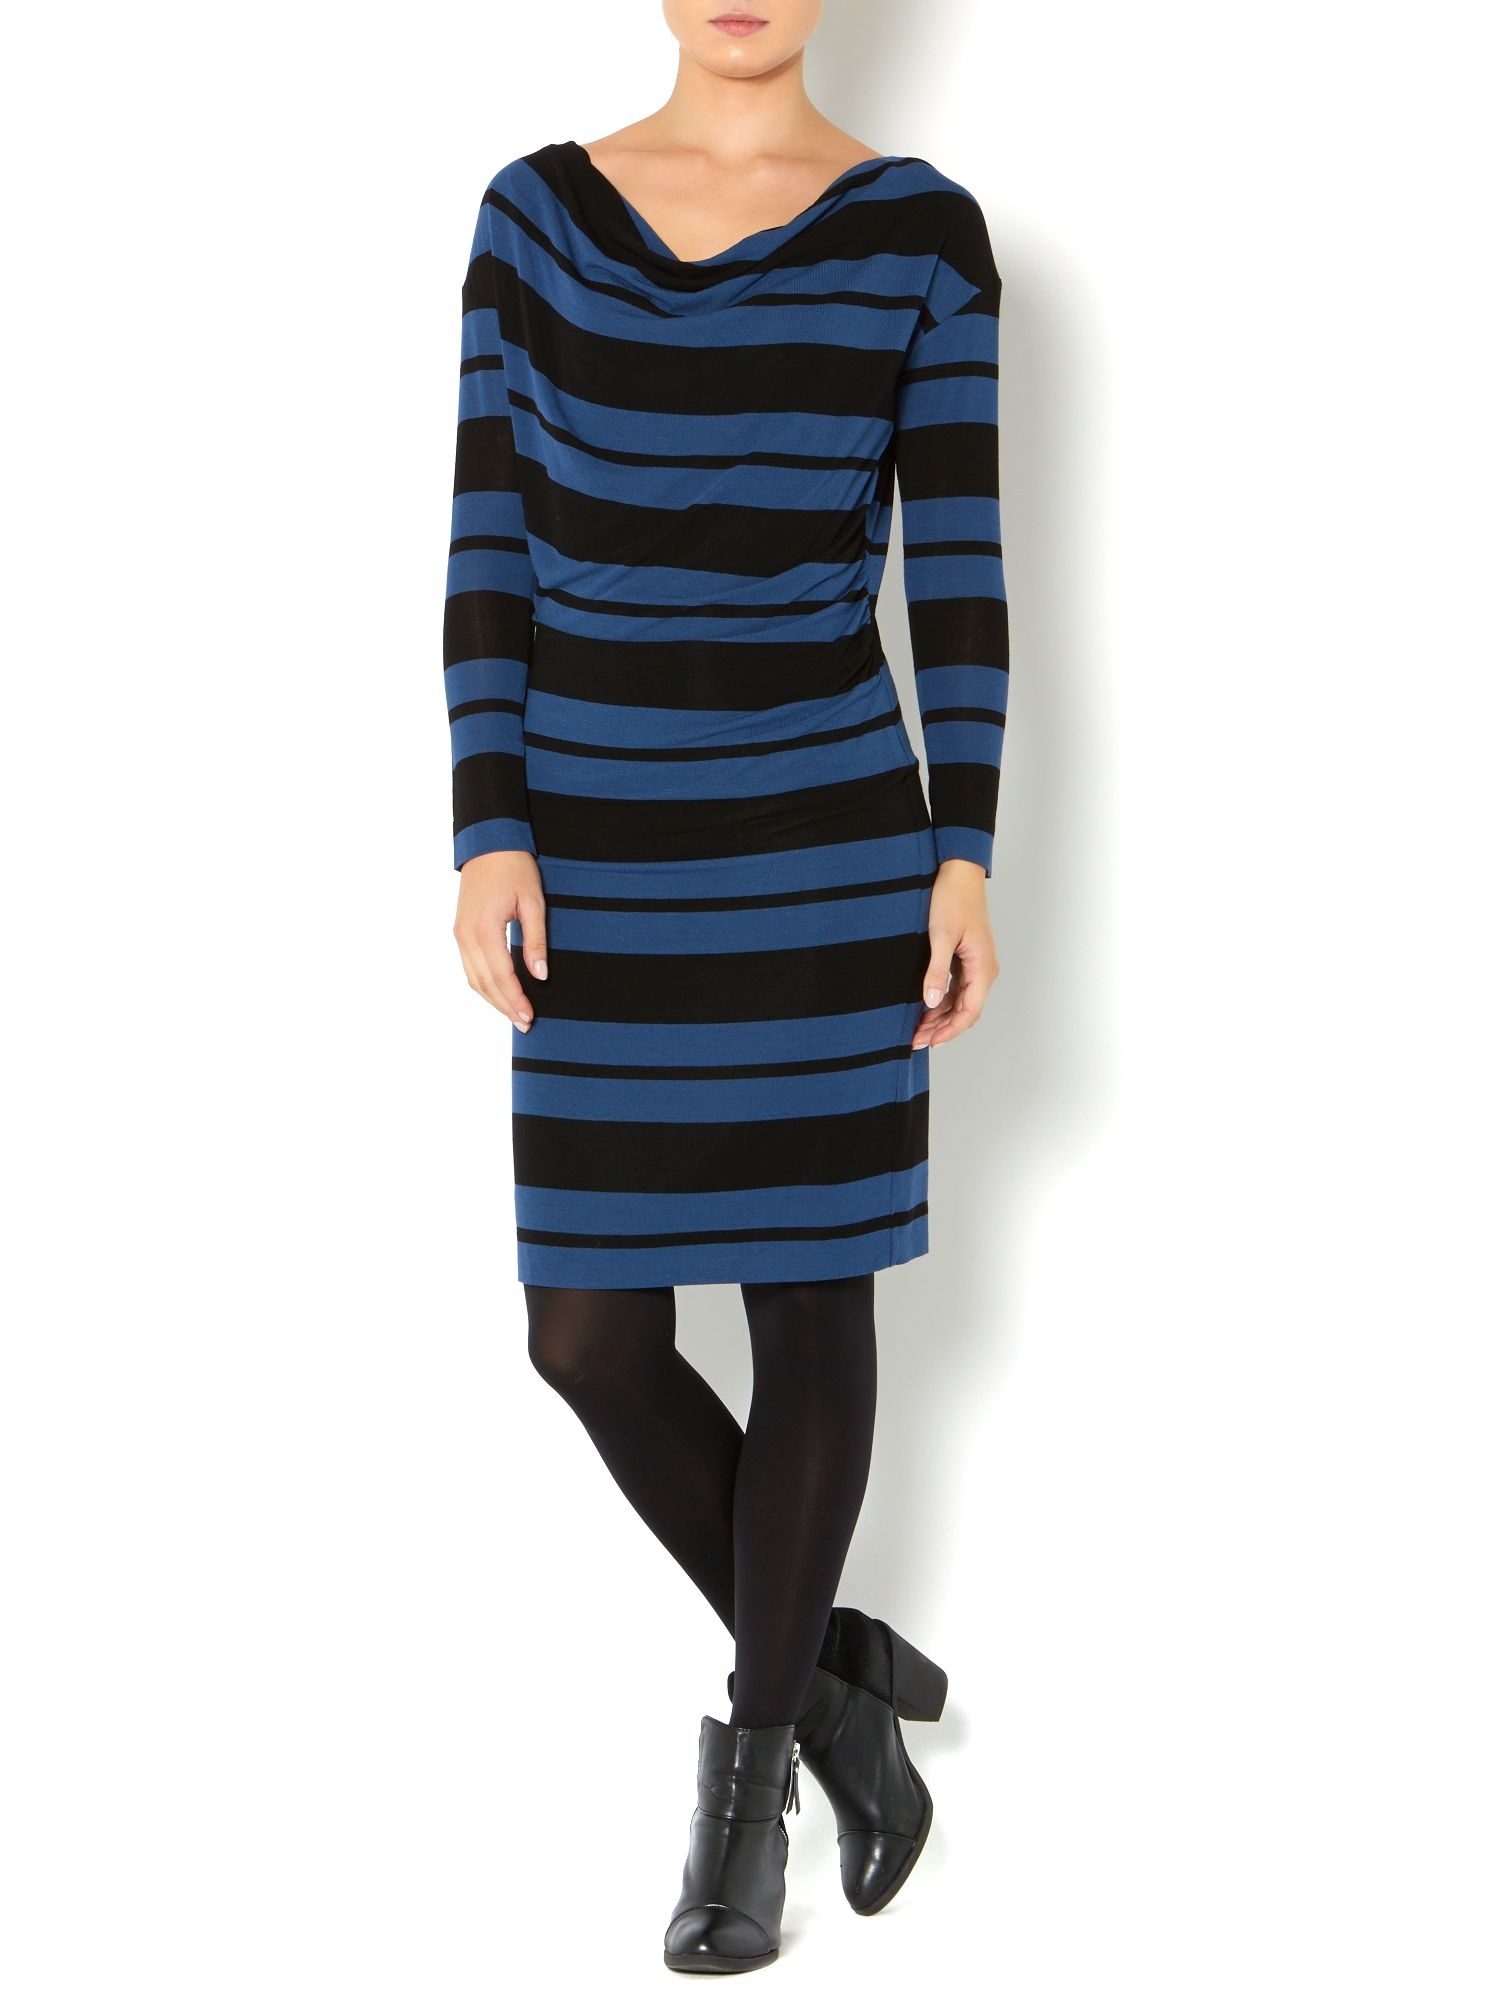 Stripe cowl knitted dress